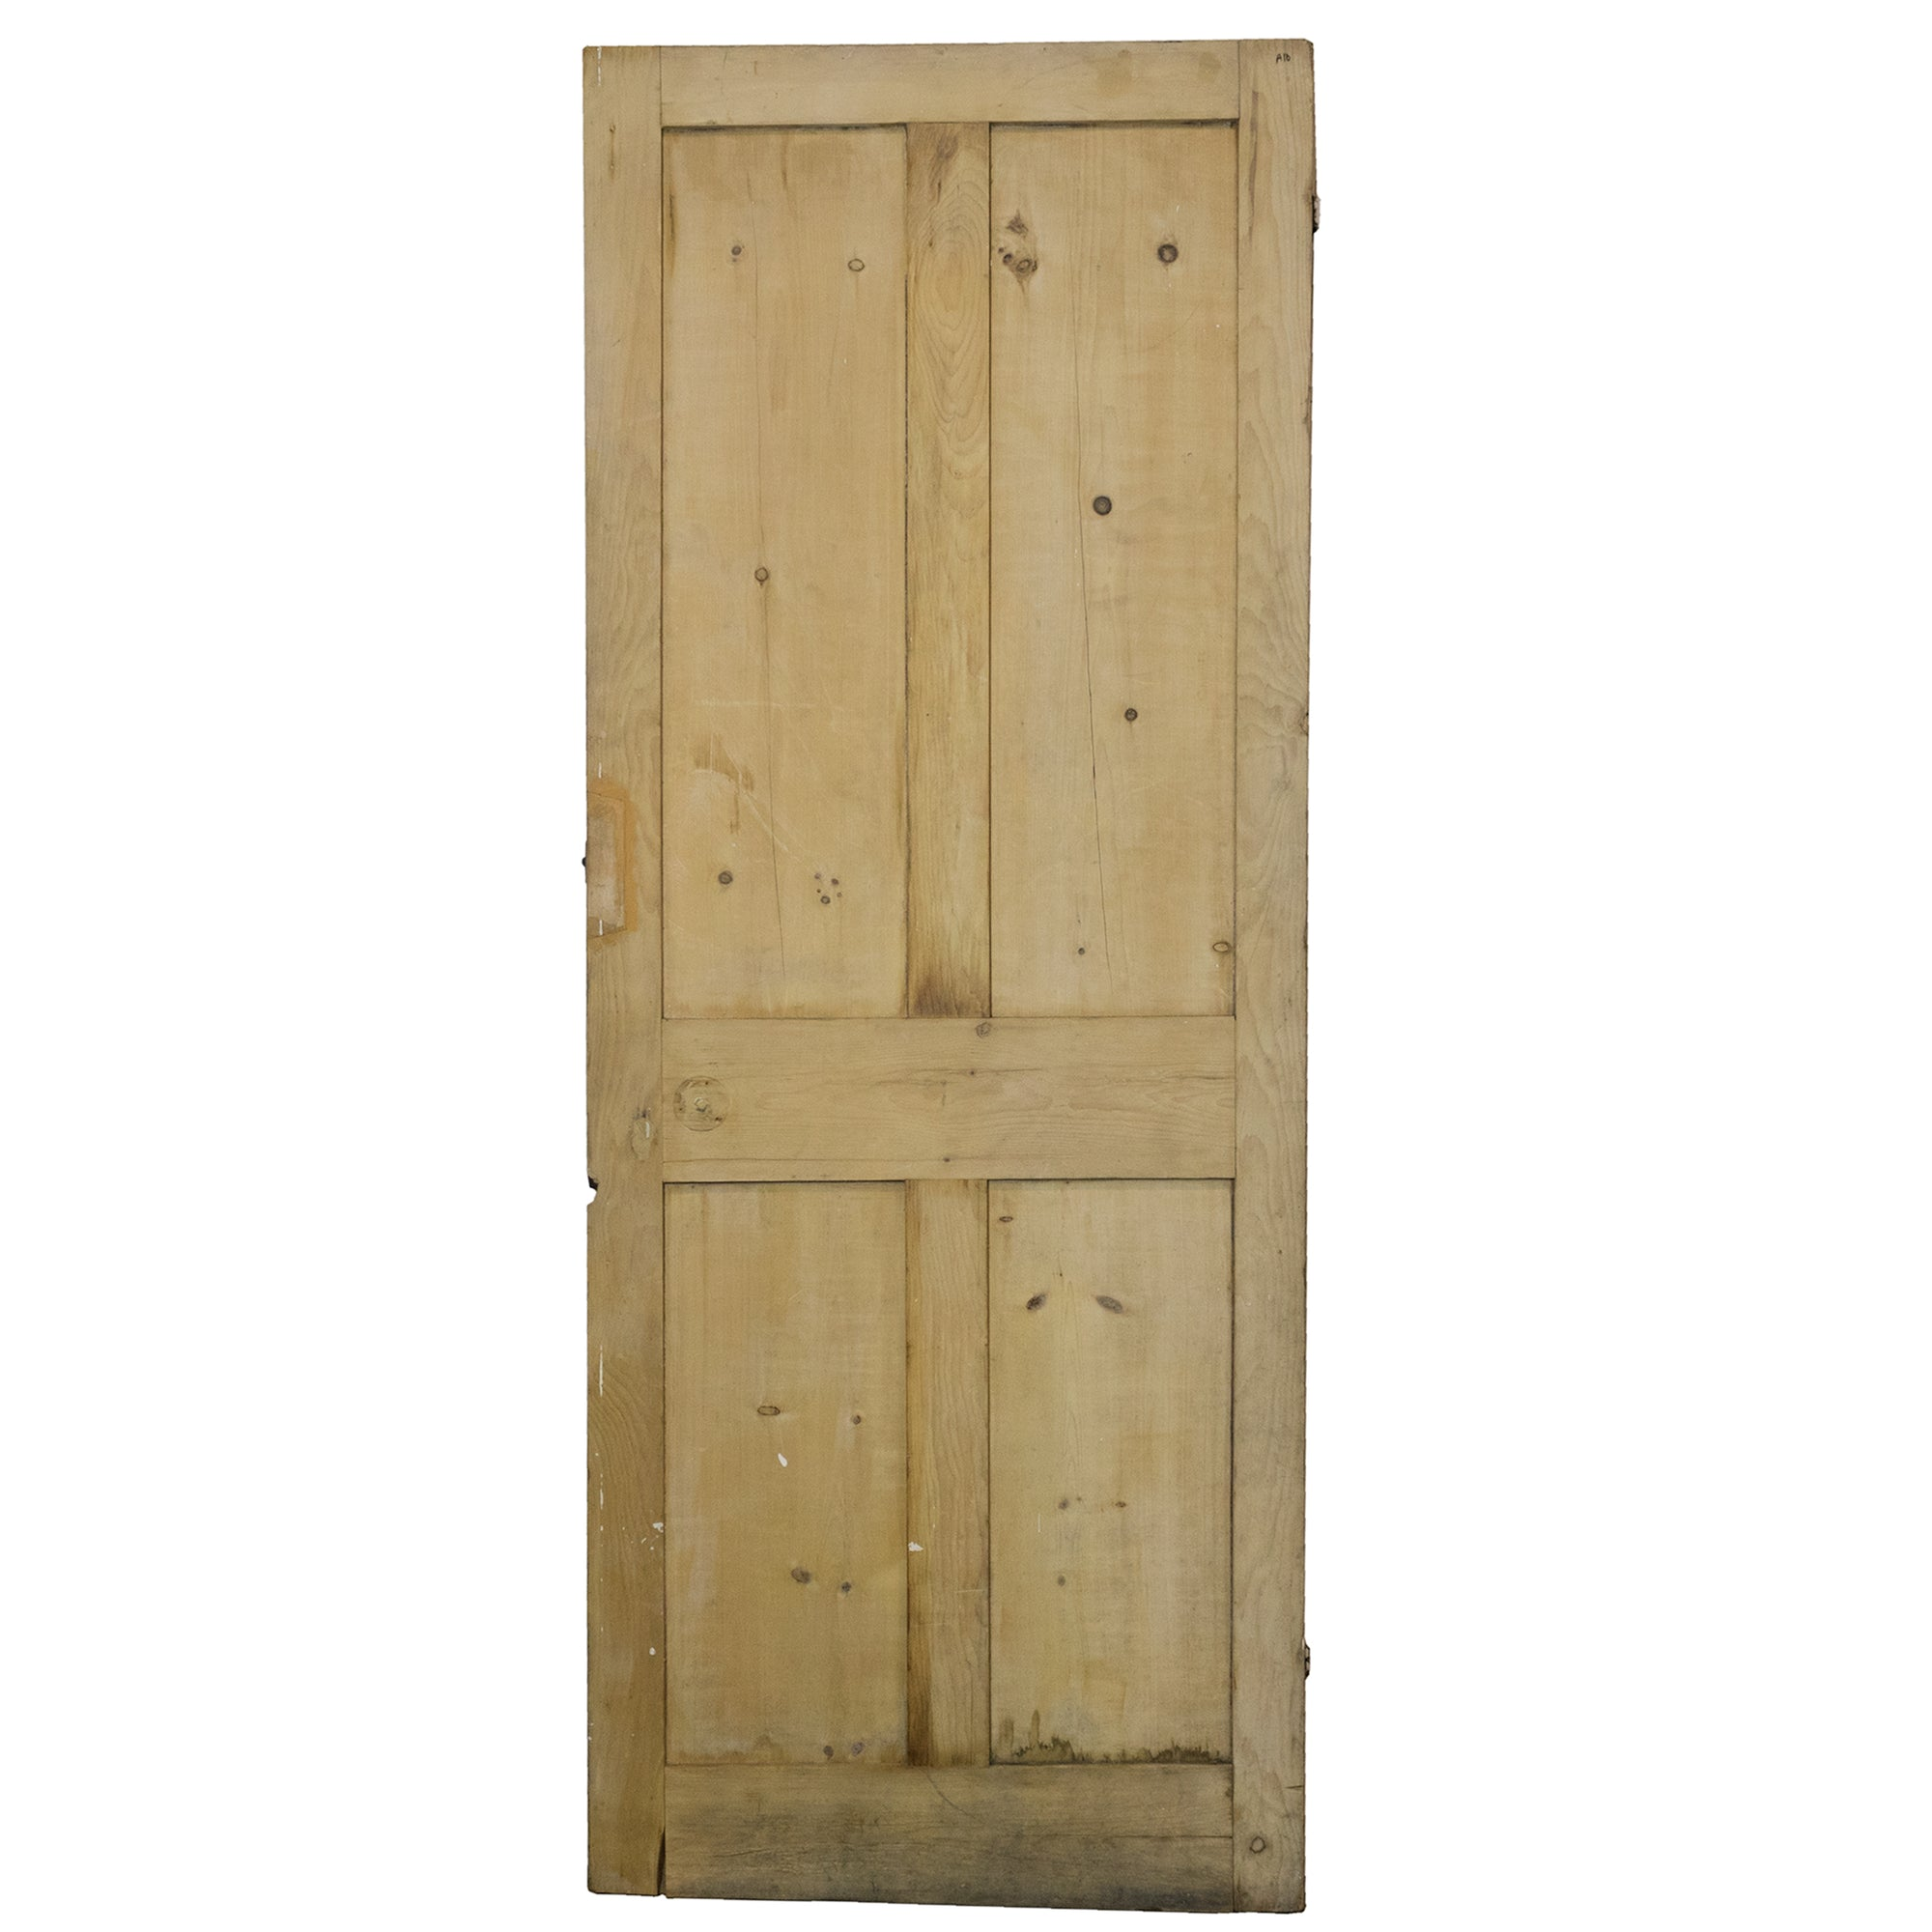 Antique Victorian 4 Panel Door - 195cm x 75cm